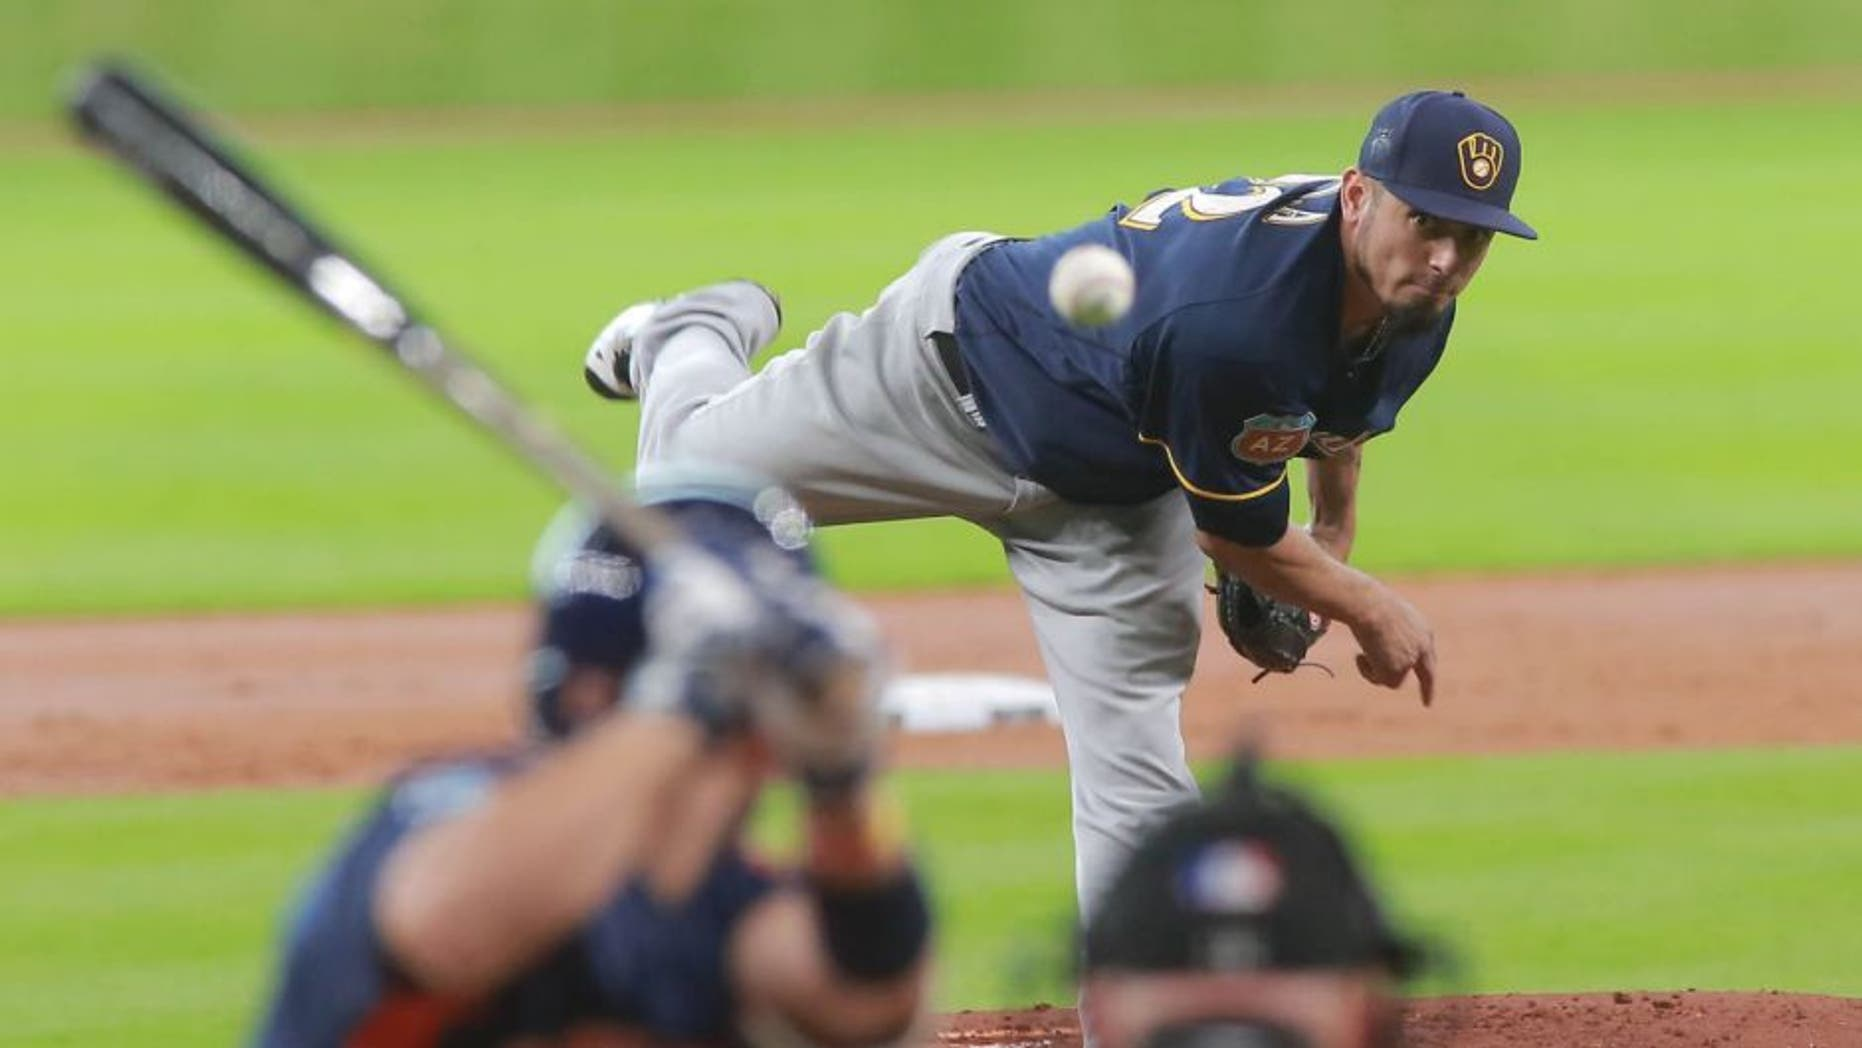 Friday, April 1: Milwaukee Brewers pitcher Matt Garza delivers a pitch to the Houston Astros' Jose Altuve in the first inning of an exhibition baseball game in Houston.